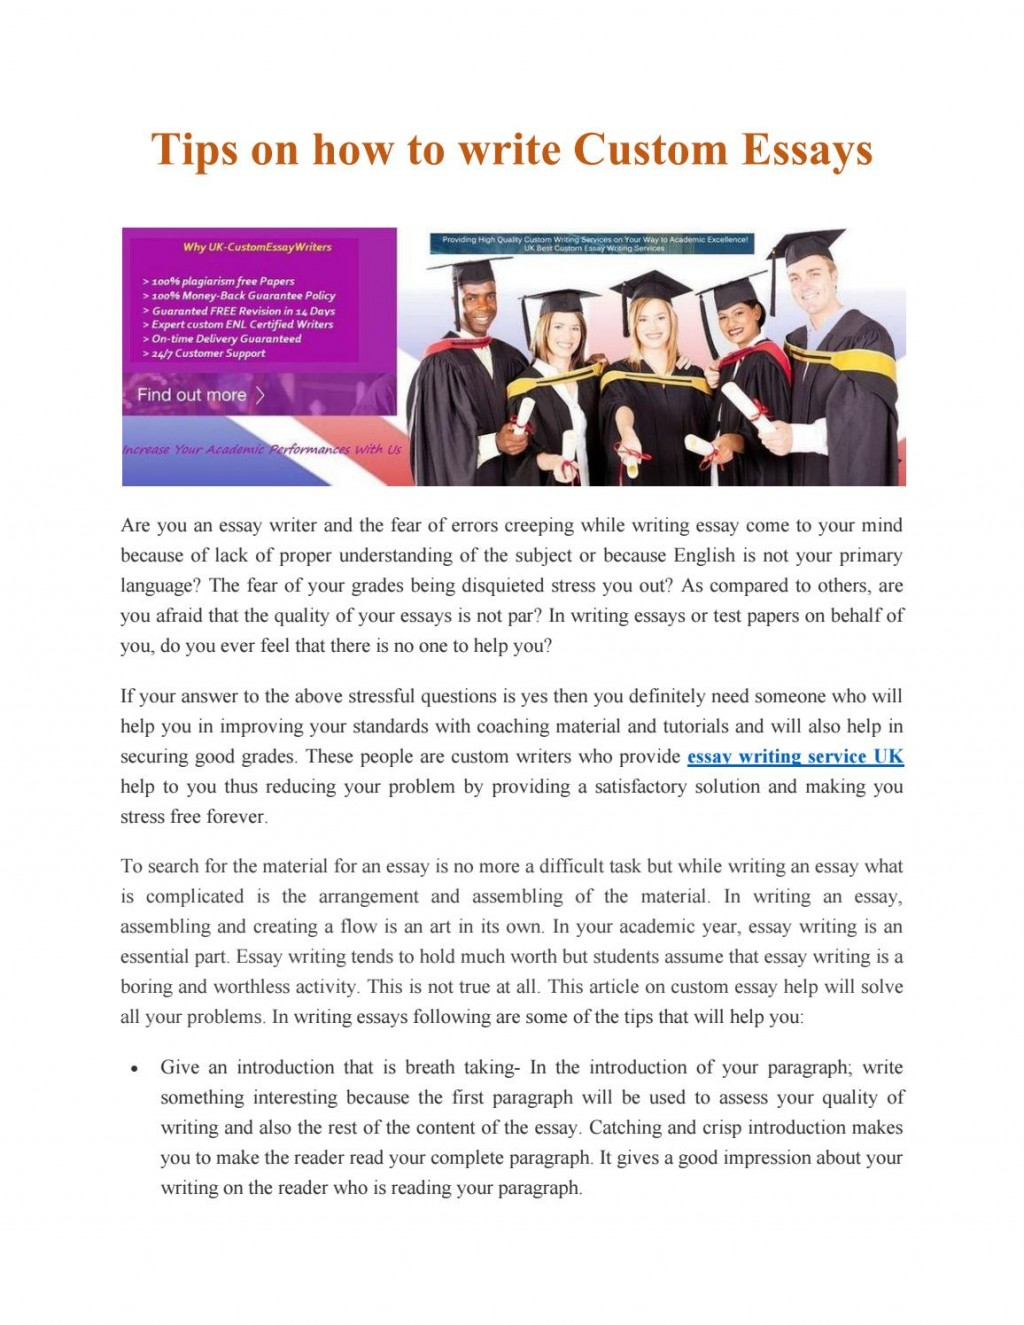 010 Essay Example Page 1 Custom Awesome Writing Services Canada Reviews Service Uk Large